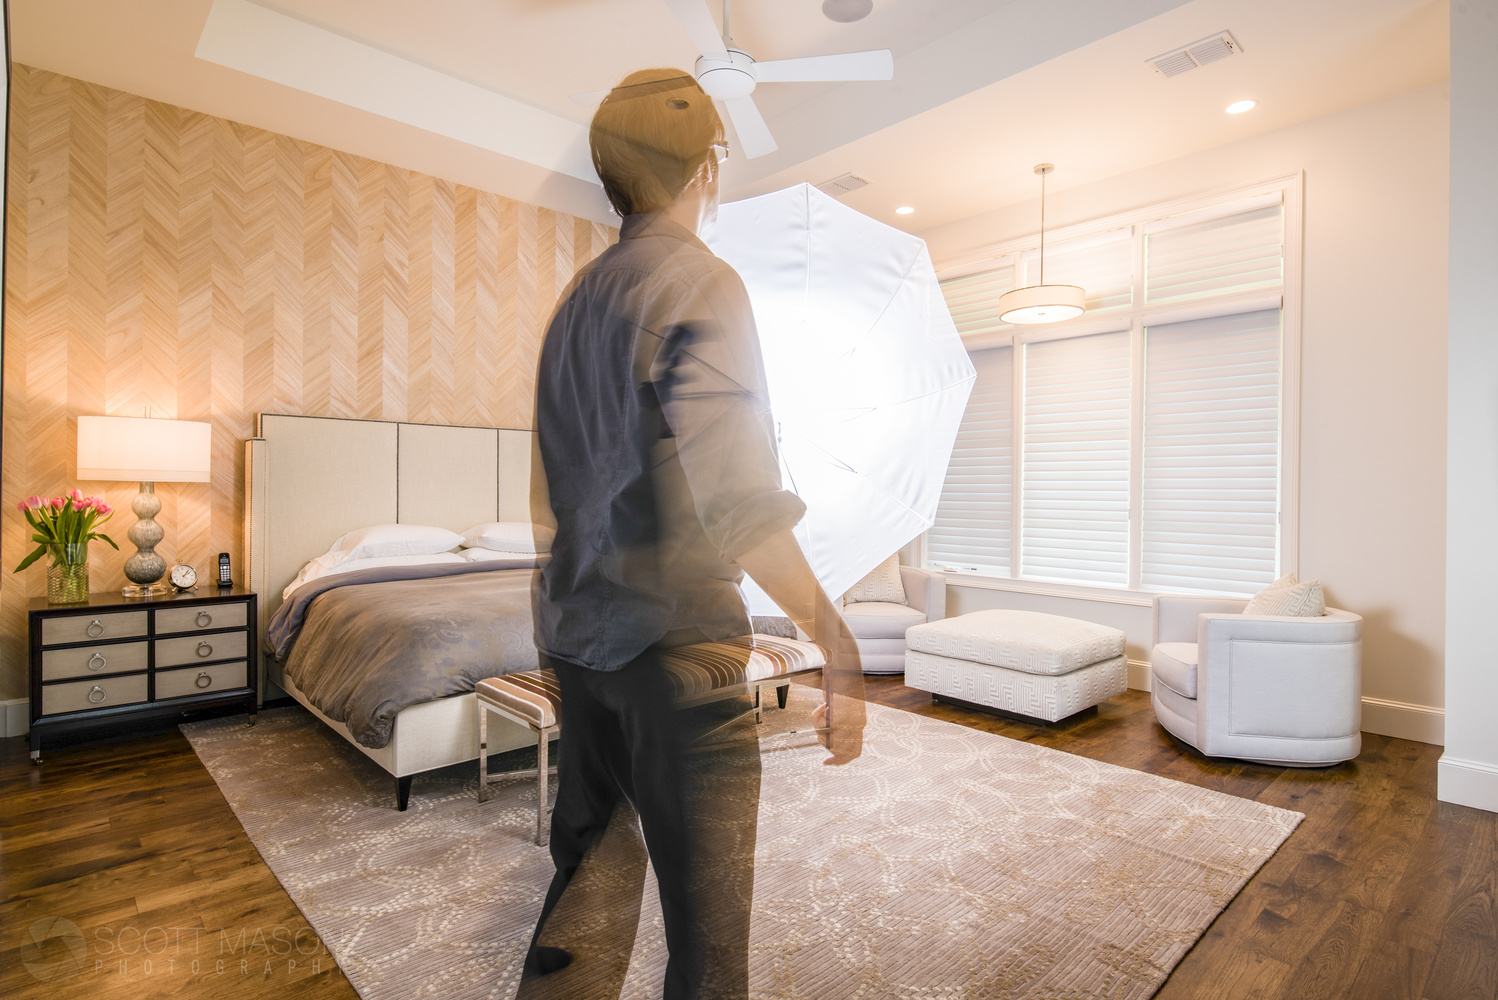 a man holding an umbrella flash inside a bedroom